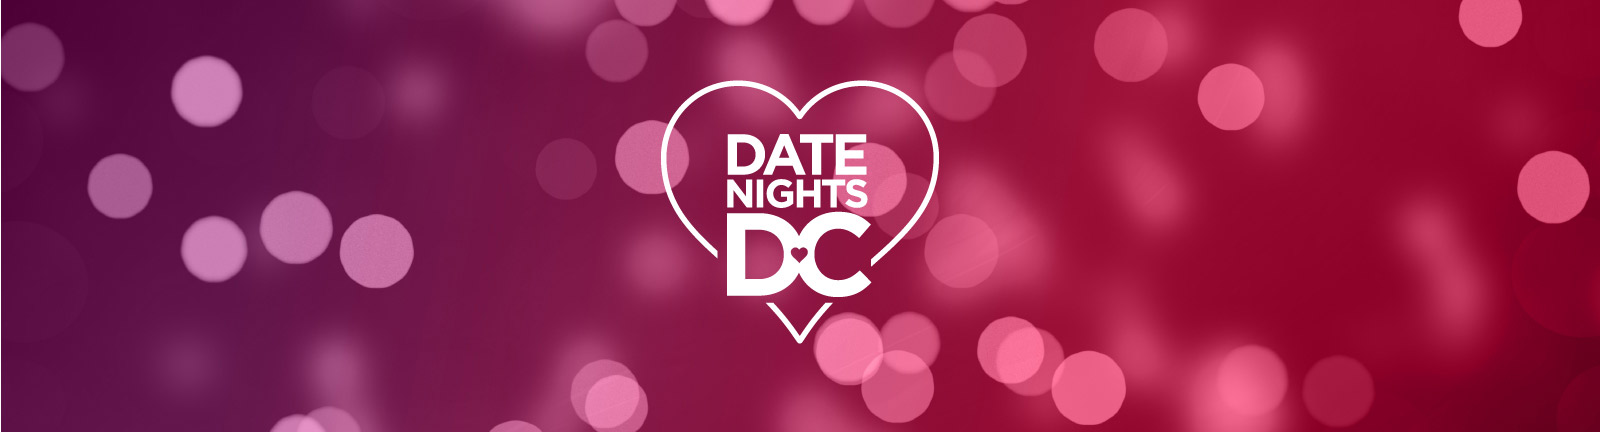 Date Nights DC - Your ultimate guide to romance in Washington, DC